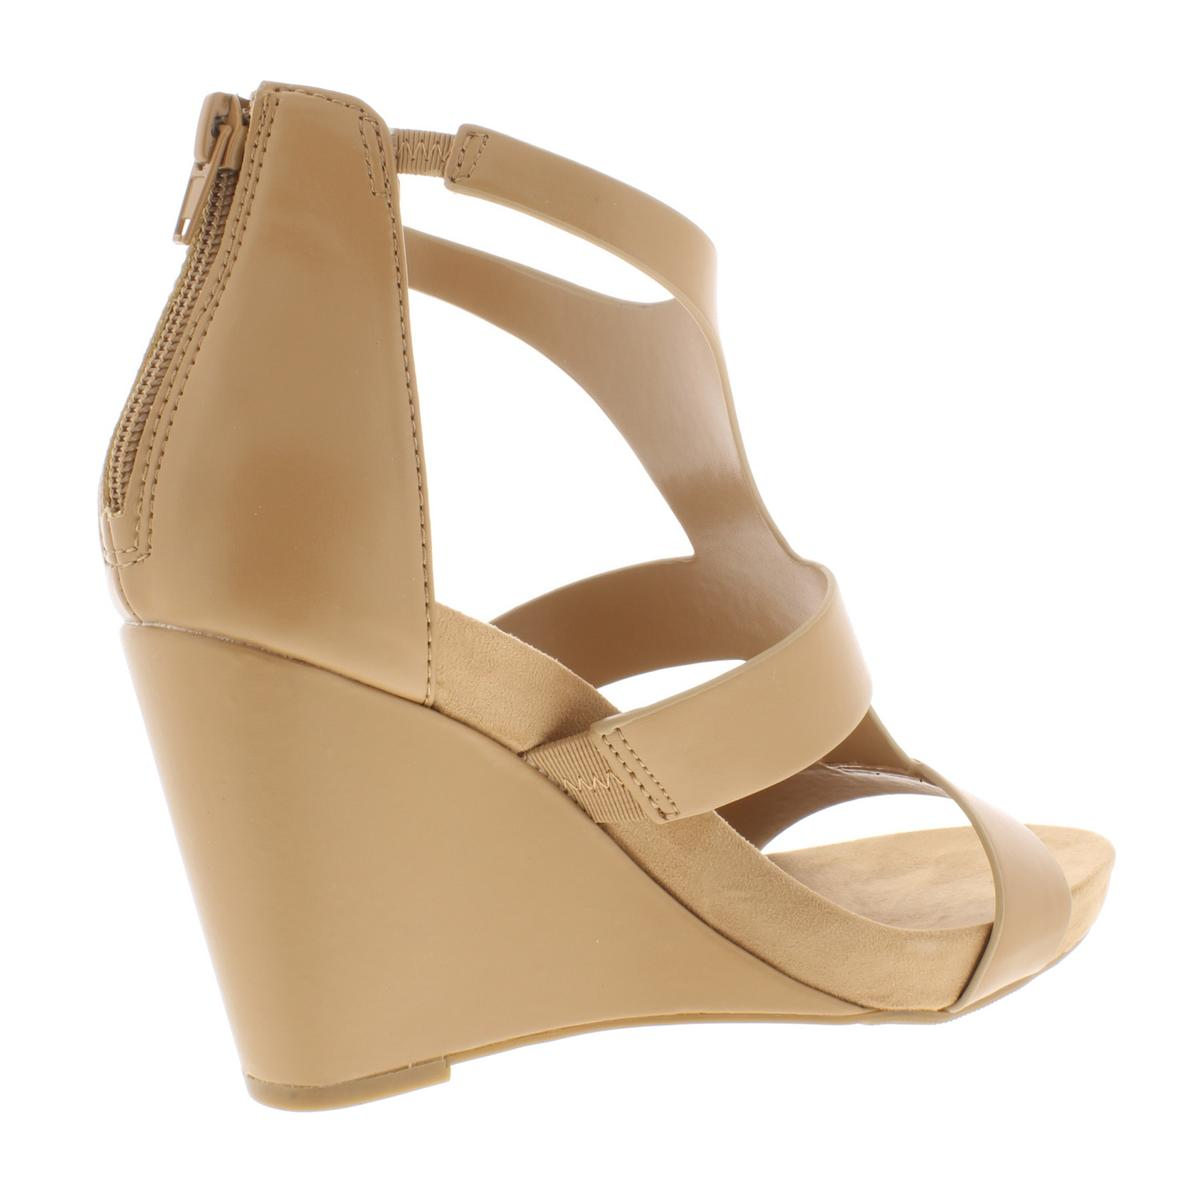 INC-Womens-Lilbeth-Faux-Leather-T-Strap-Strappy-Wedges-Sandals-BHFO-6942 thumbnail 4